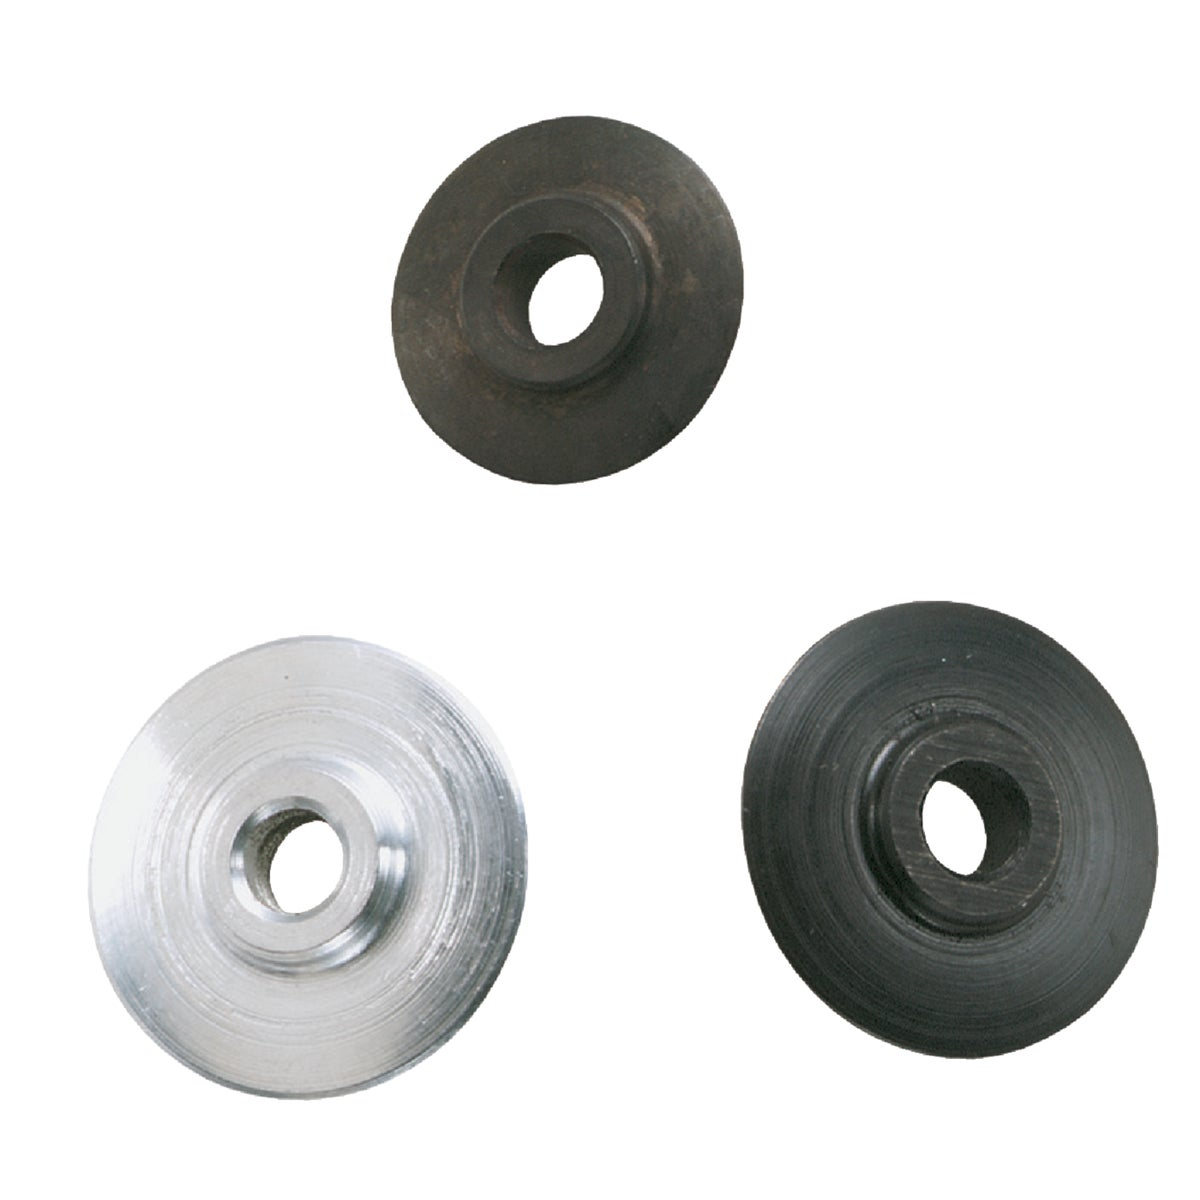 REPLACEMENT CUTTER WHEEL - RW122 by Gen Tools Mfg